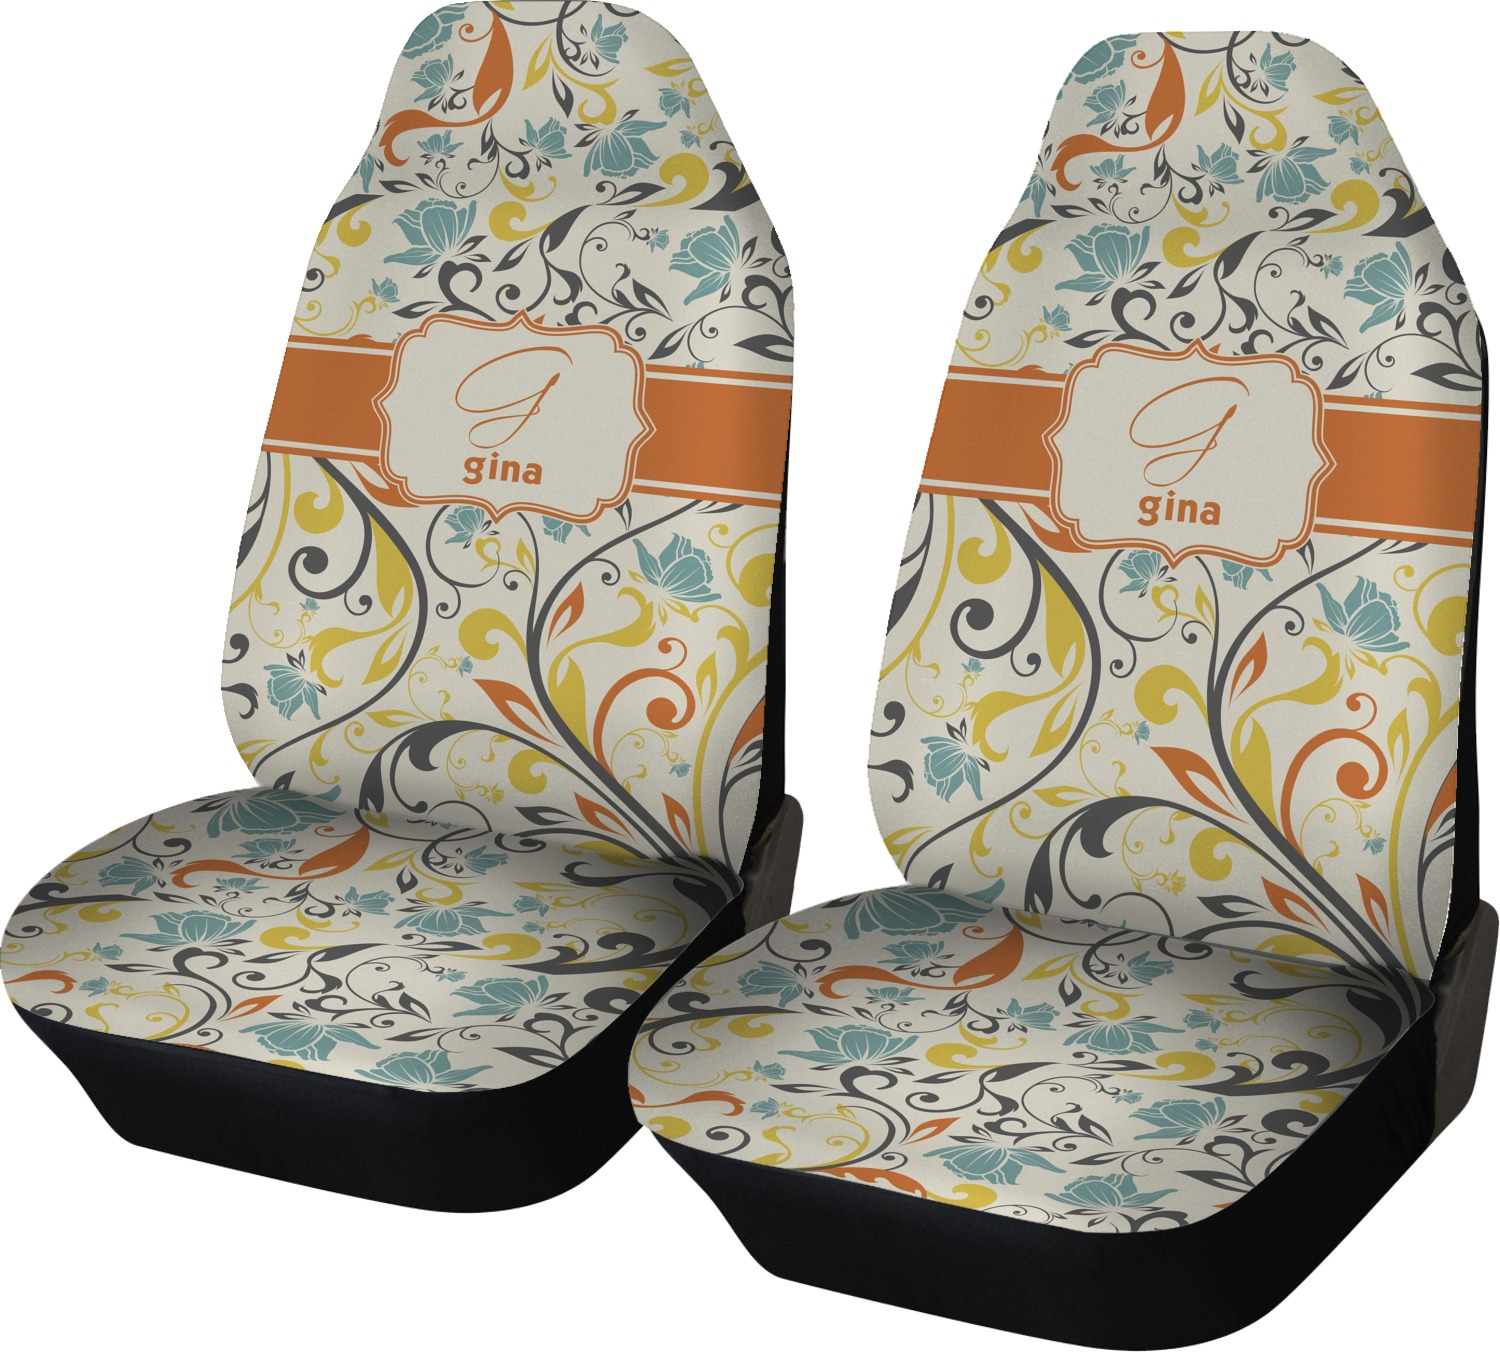 Swirly Floral Car Seat Covers Set Of Two Personalized